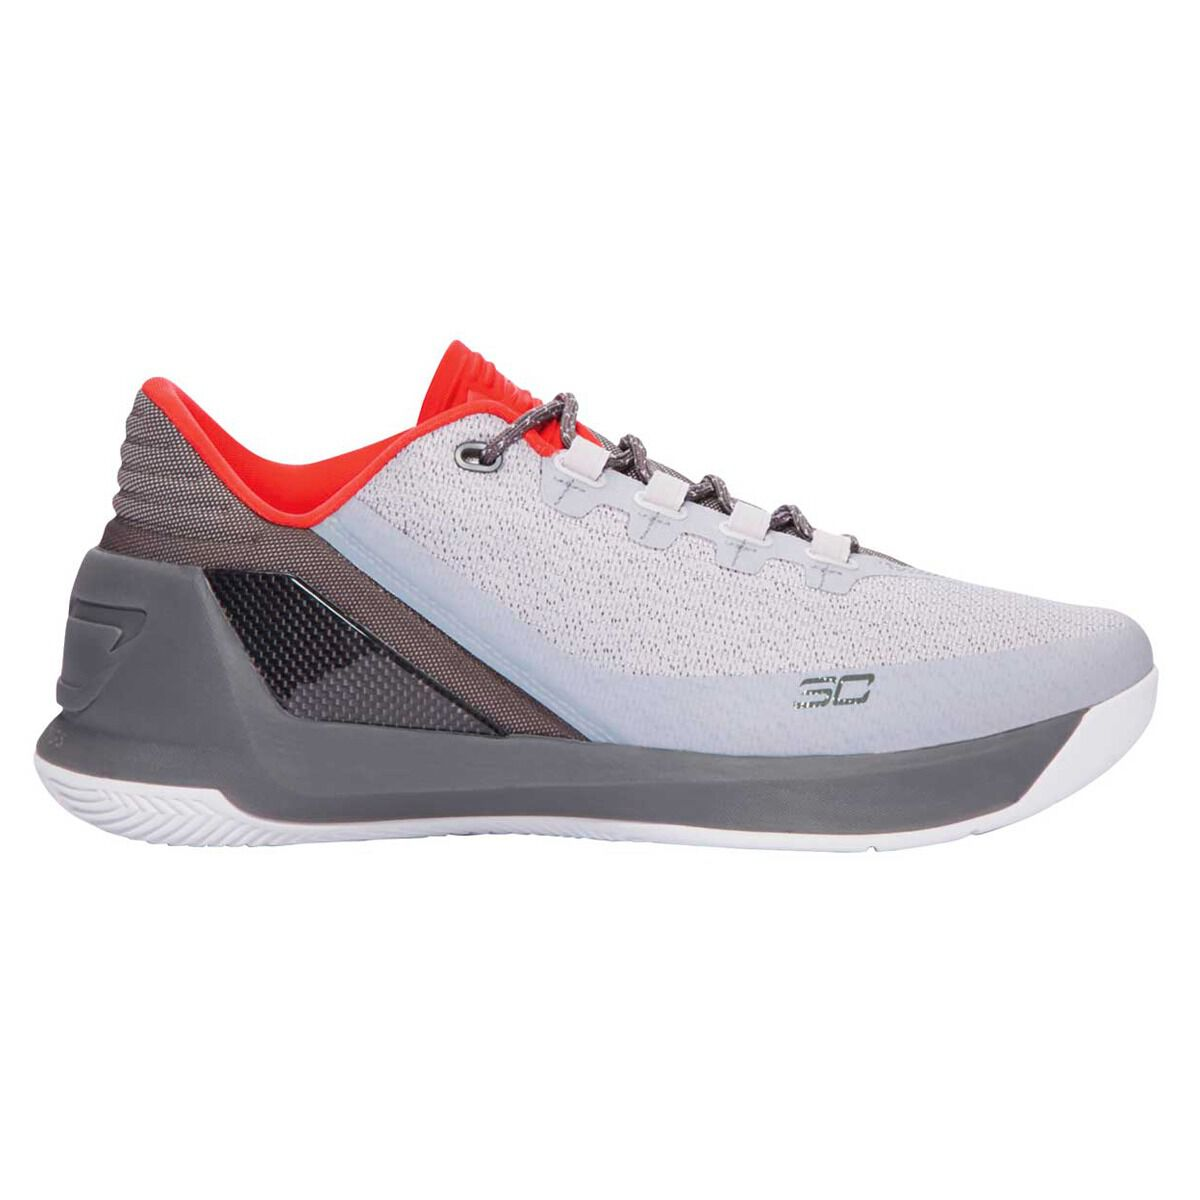 dd44eb02830b usa under armour ua curry 6 54044 ec3bc  closeout under armour curry 3 low mens  basketball shoes grey black us 7 grey 10762 4dfc6